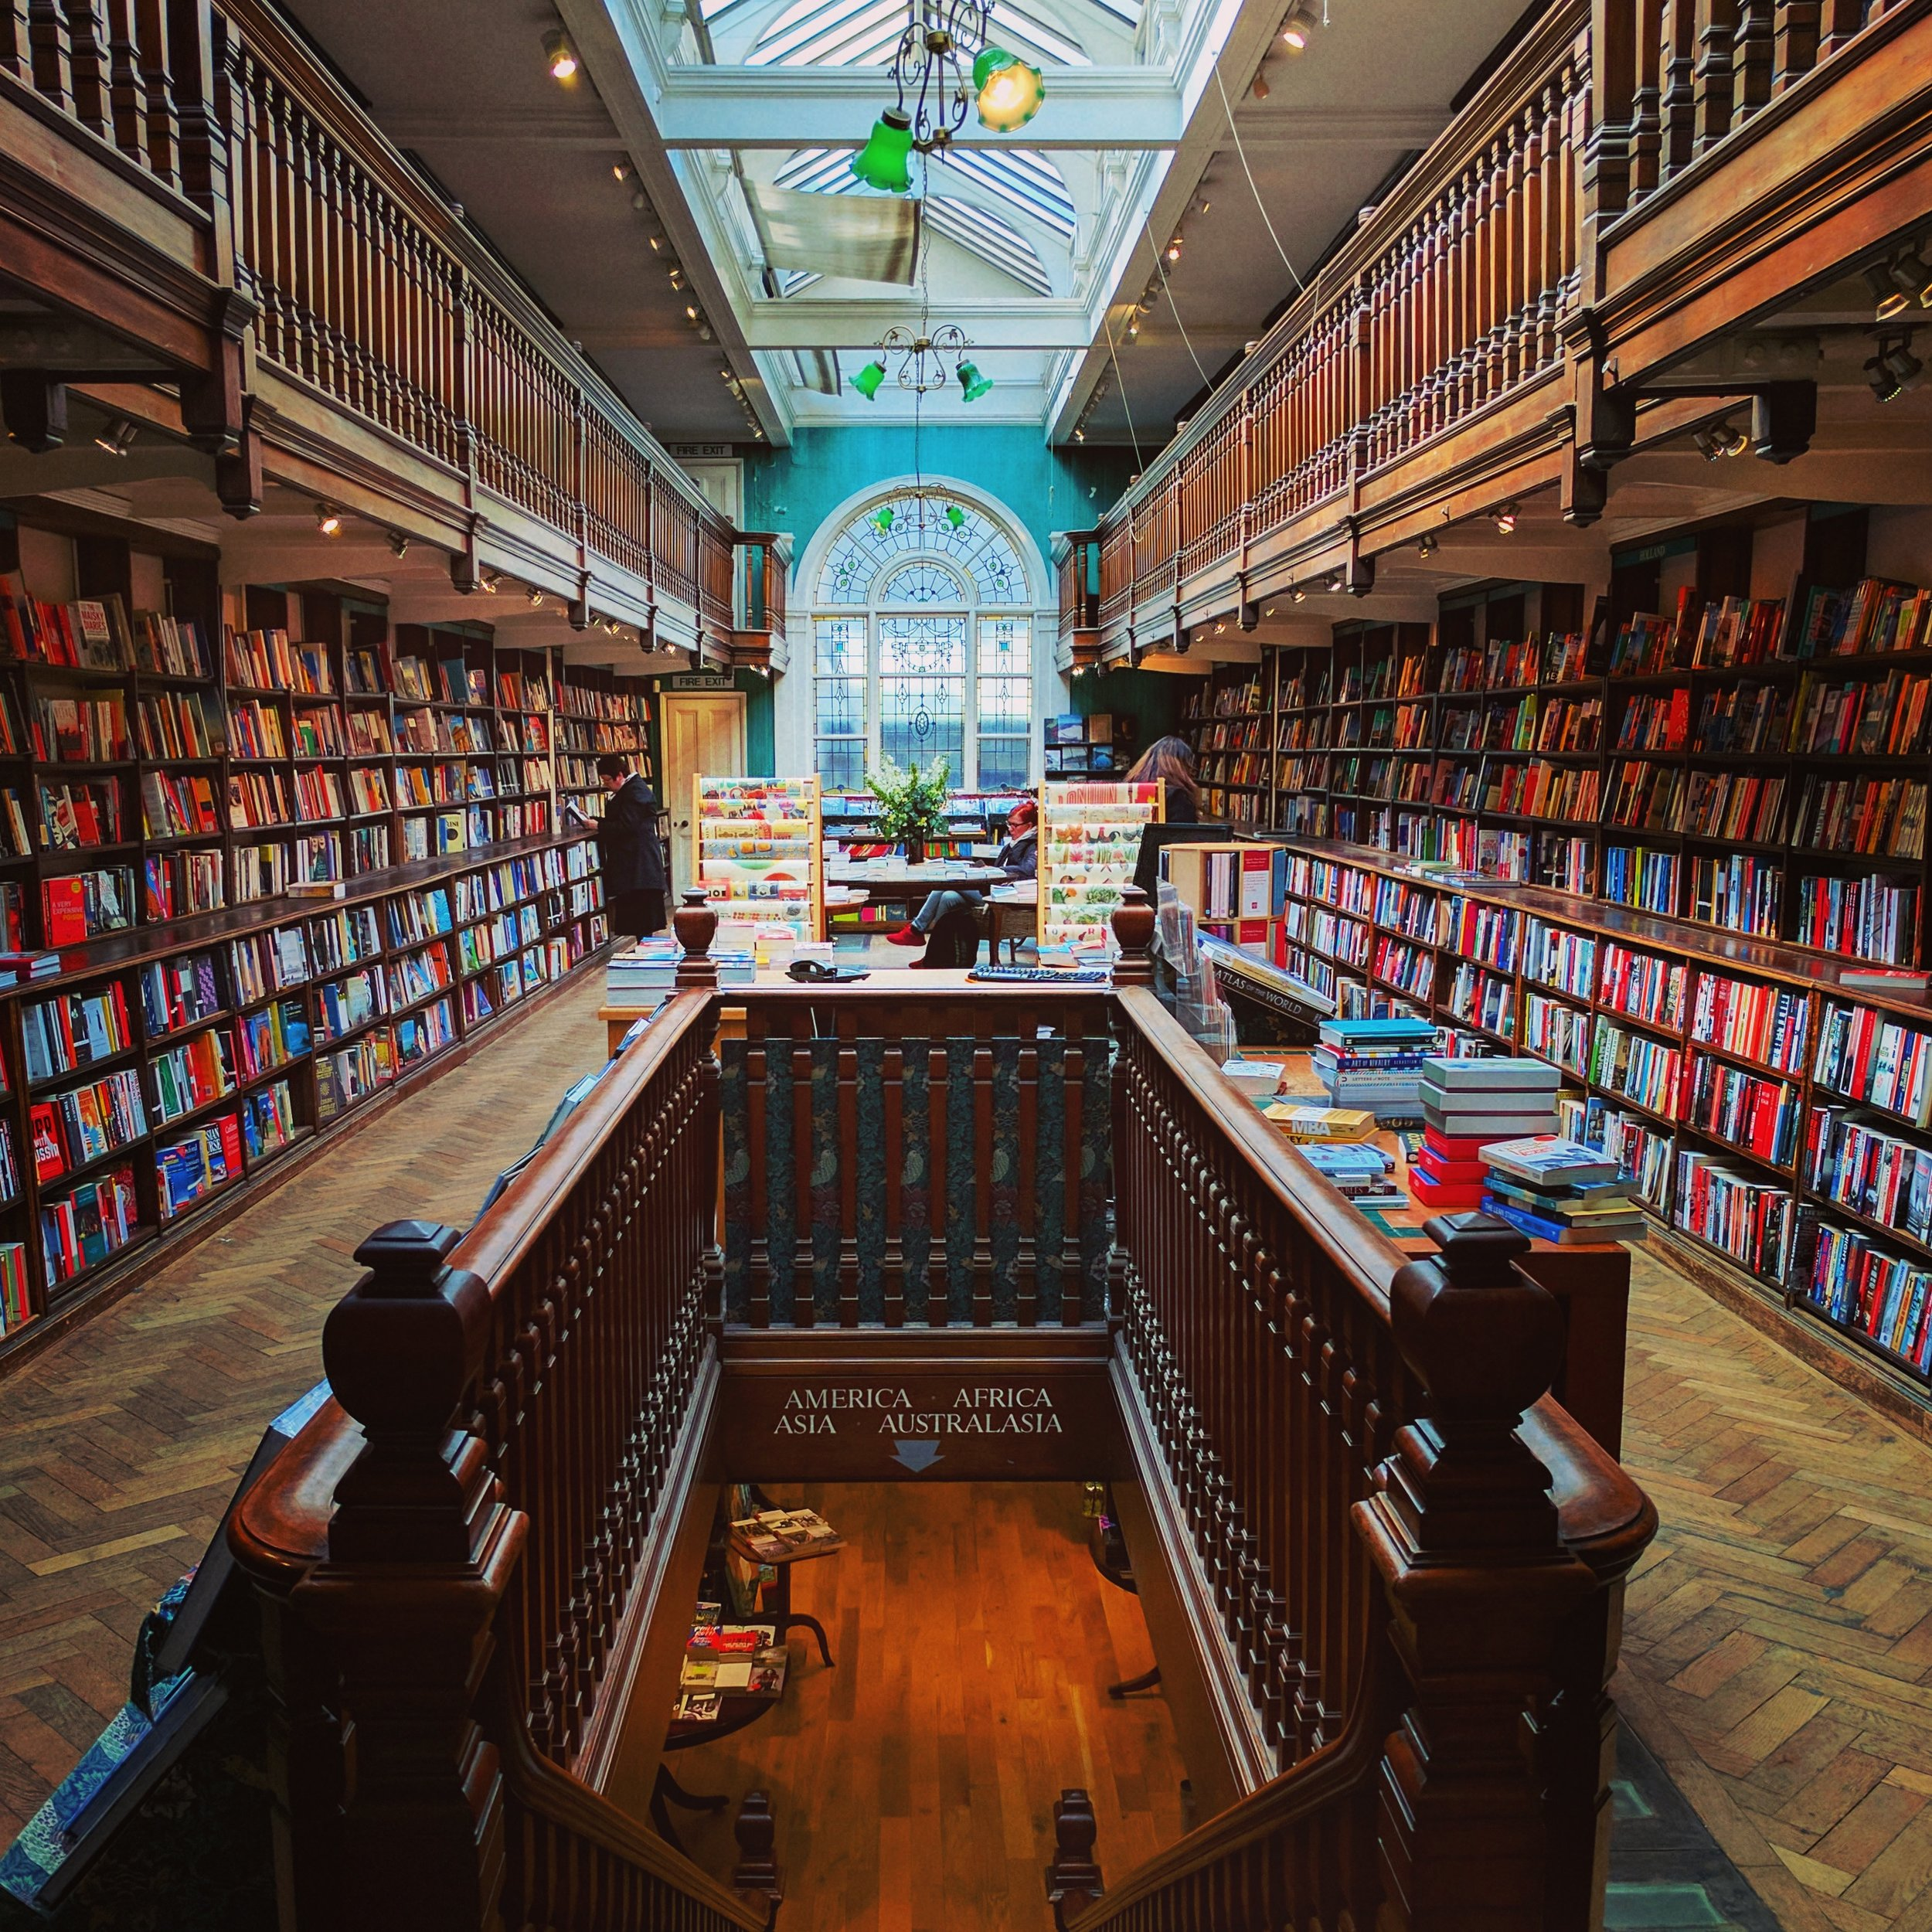 Daunt Books, where James Daunt started out his bookselling career before becoming Waterstones' managing director.